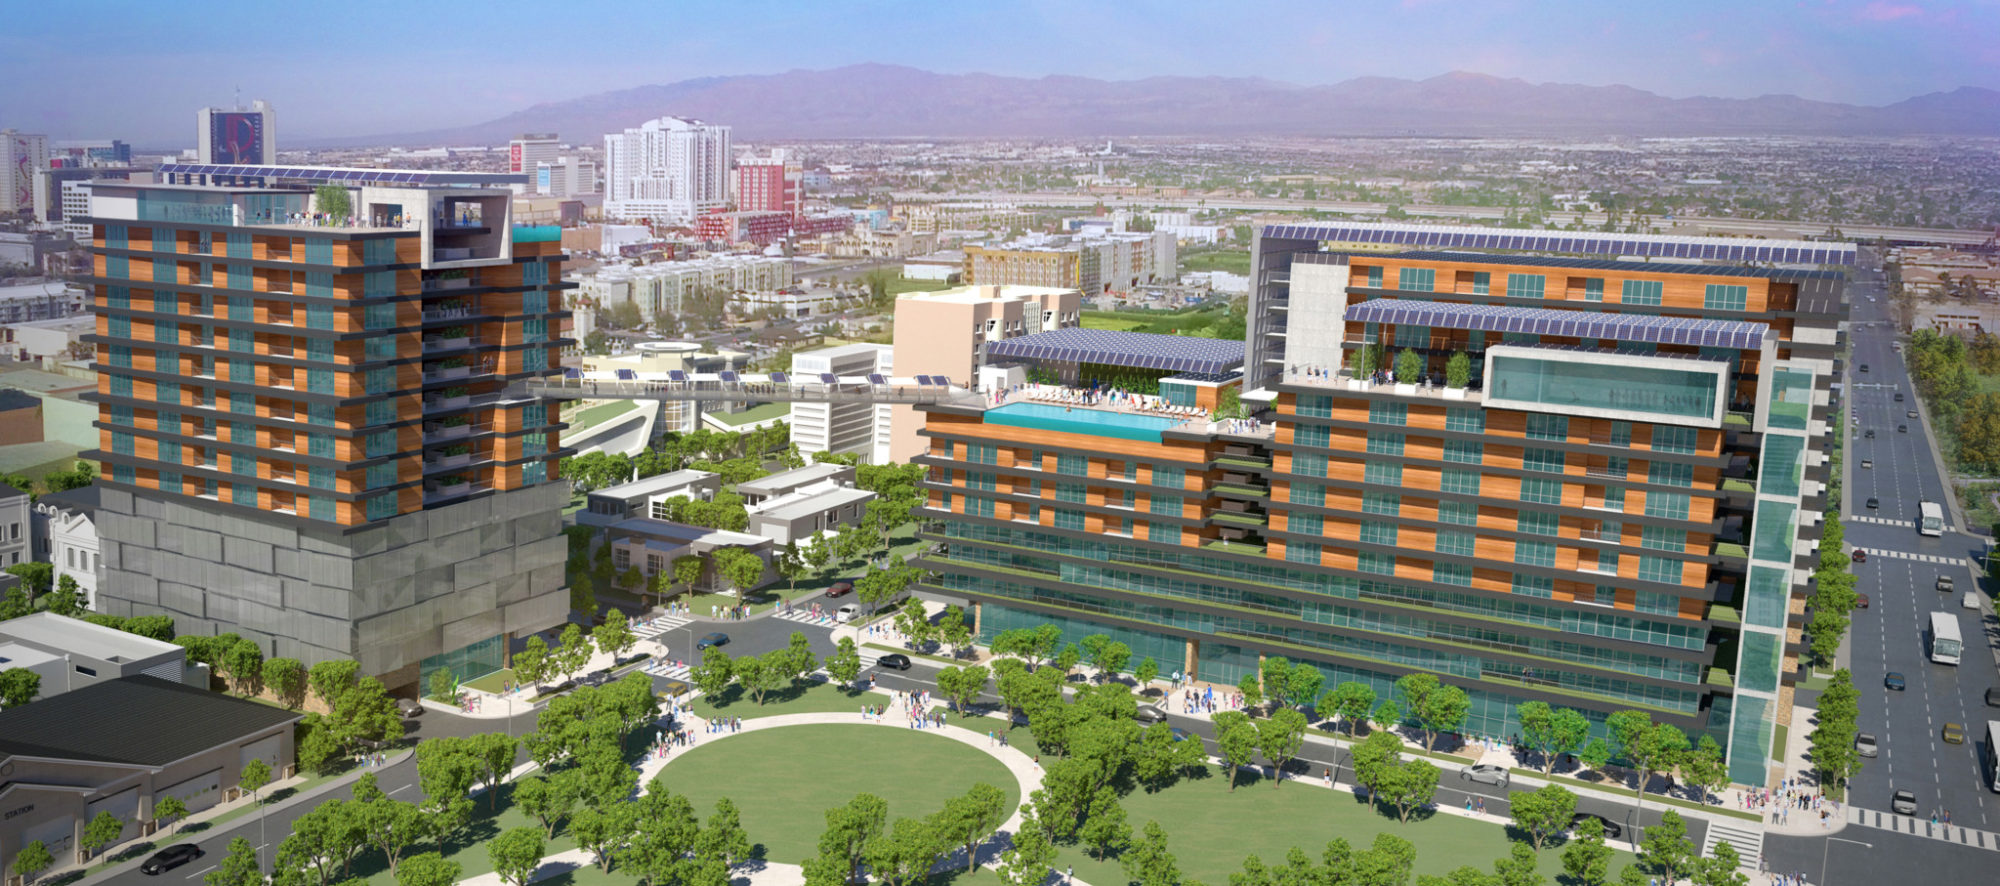 A design rendering of the proposed Downtown 57 project in Las Vegas, designed by LGA Architecture.